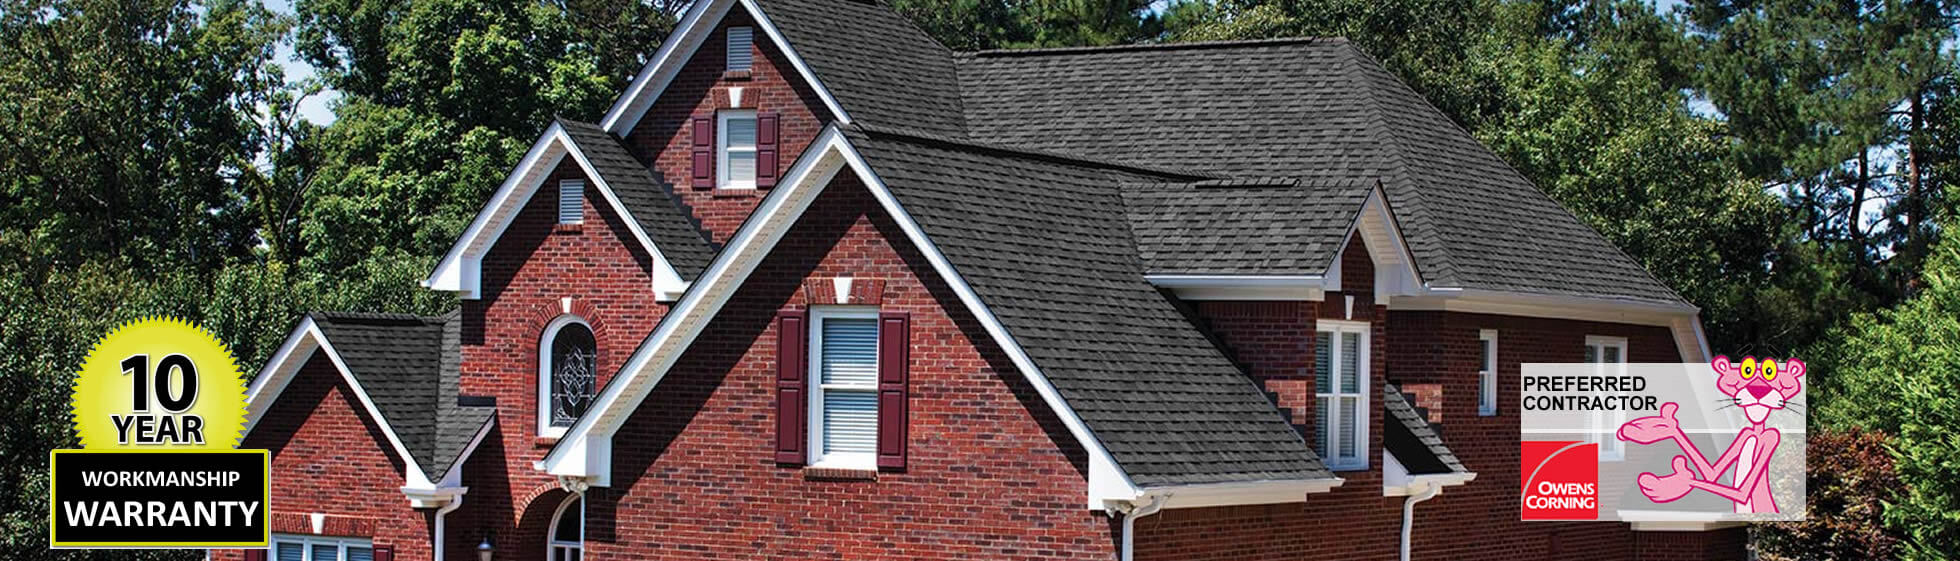 Roofing Contractor Near Me Flint Michigan